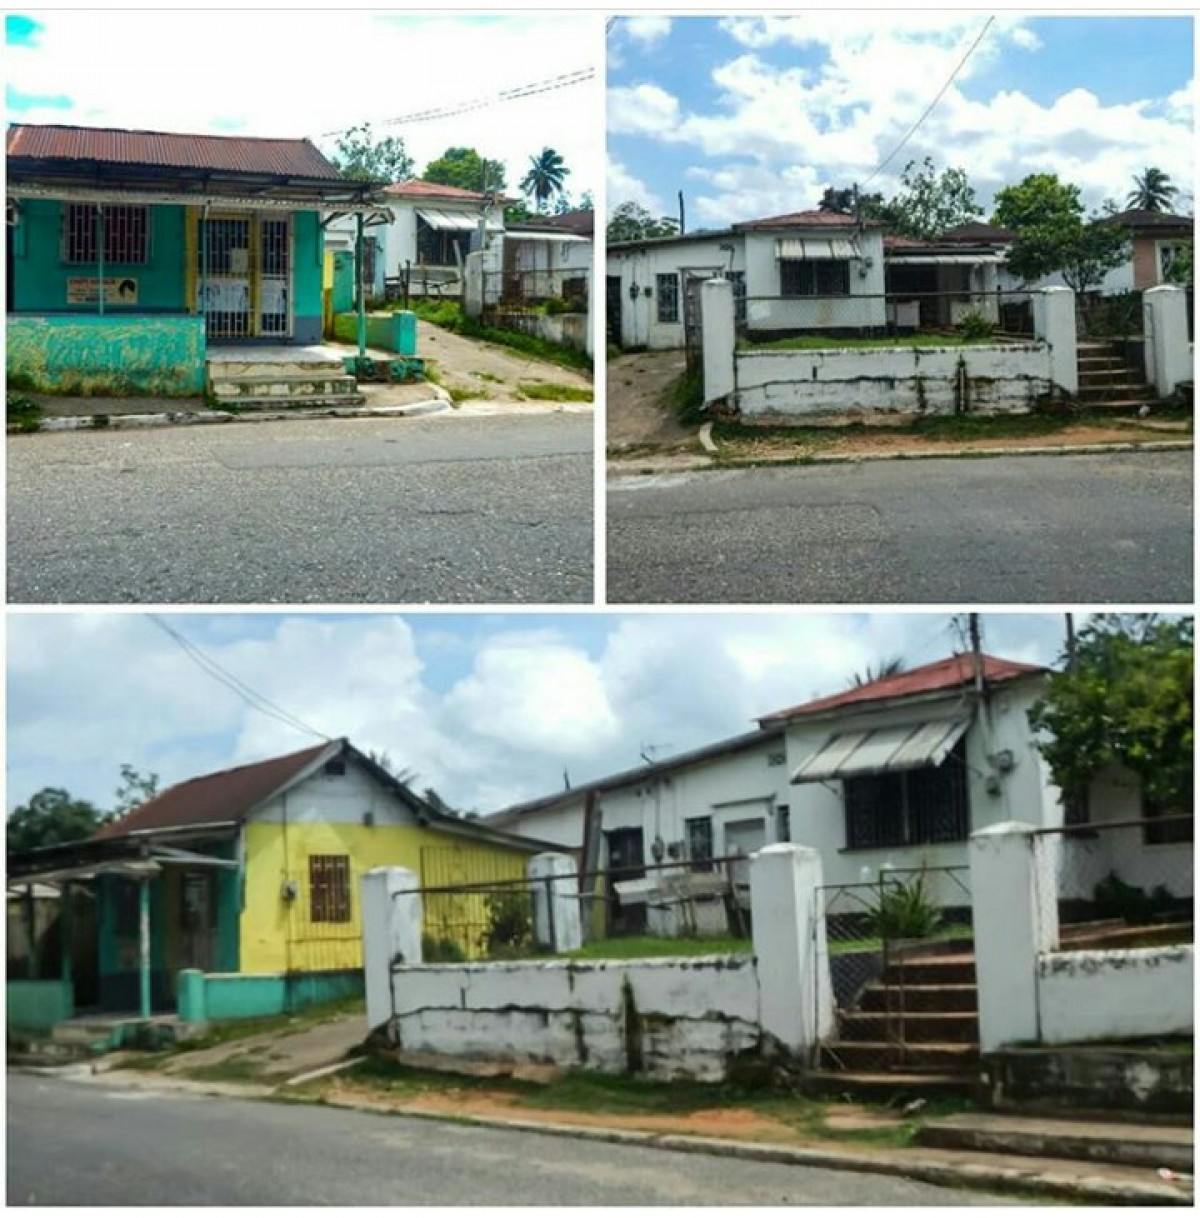 7 Bedroom 3 Bathroom House With Shop On Premises For Sale In Linstead St Catherine Houses